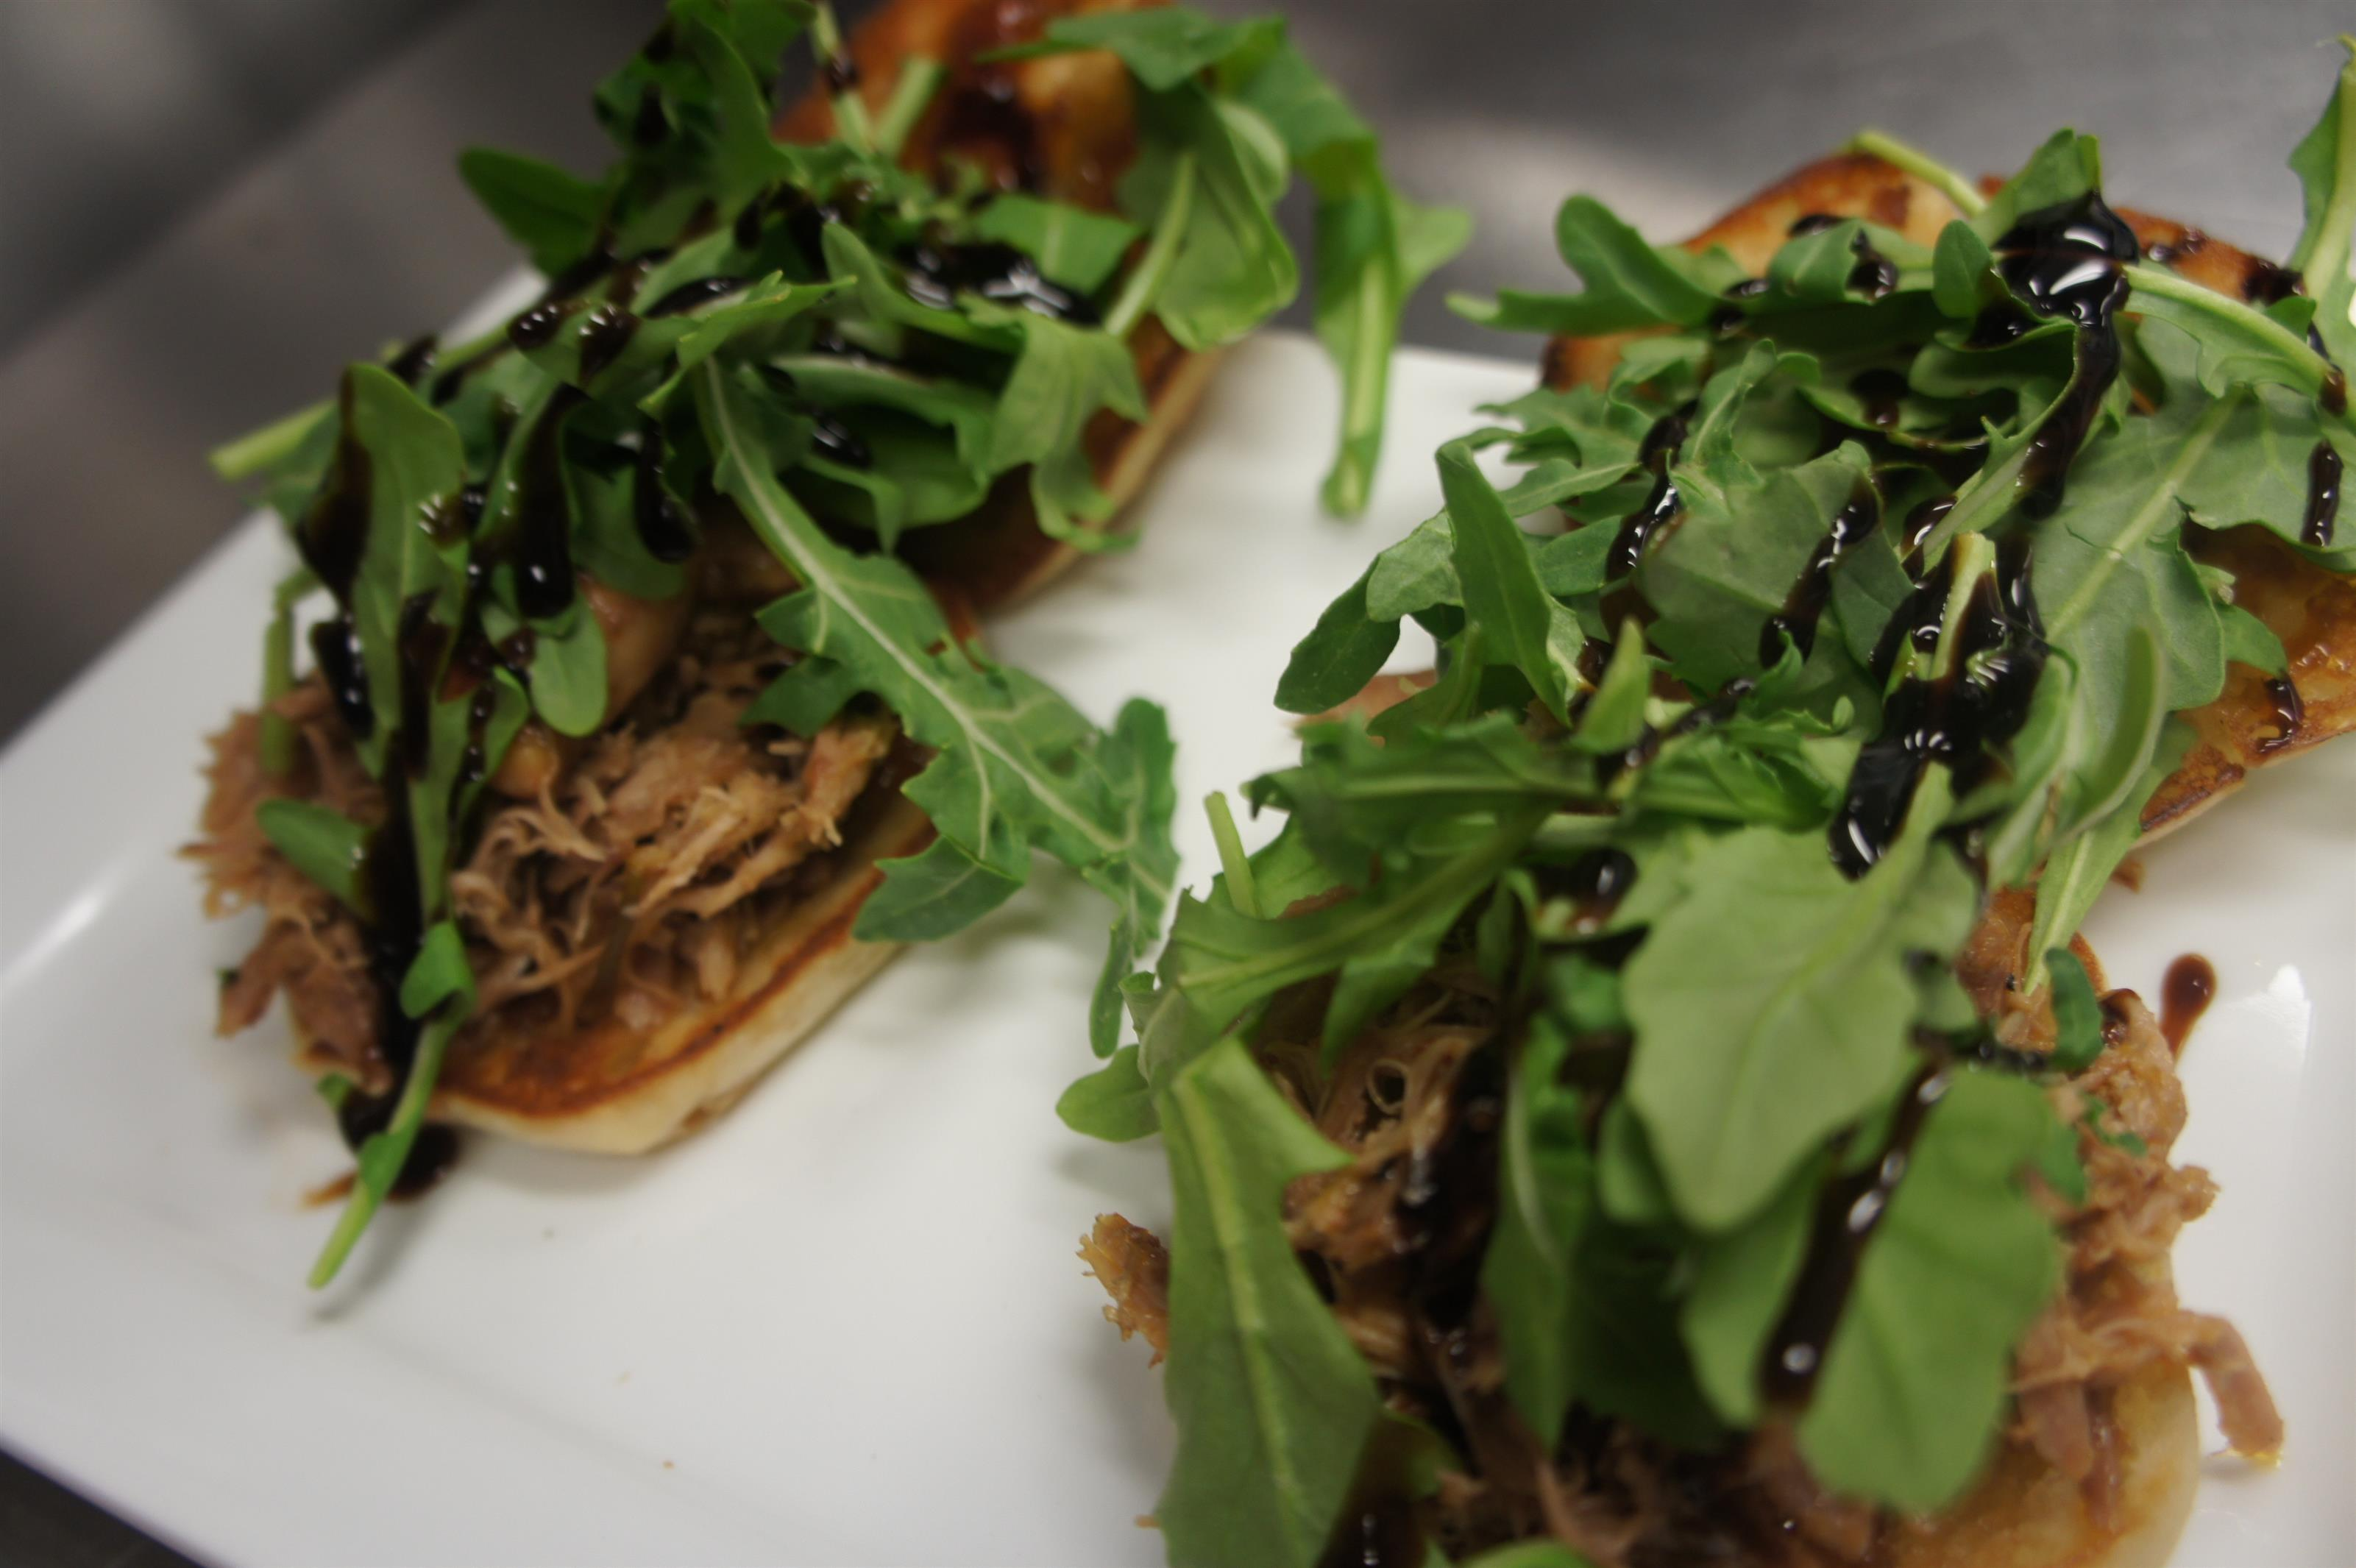 Pulled pork sliders topped with greens and drizzled with dar sauce